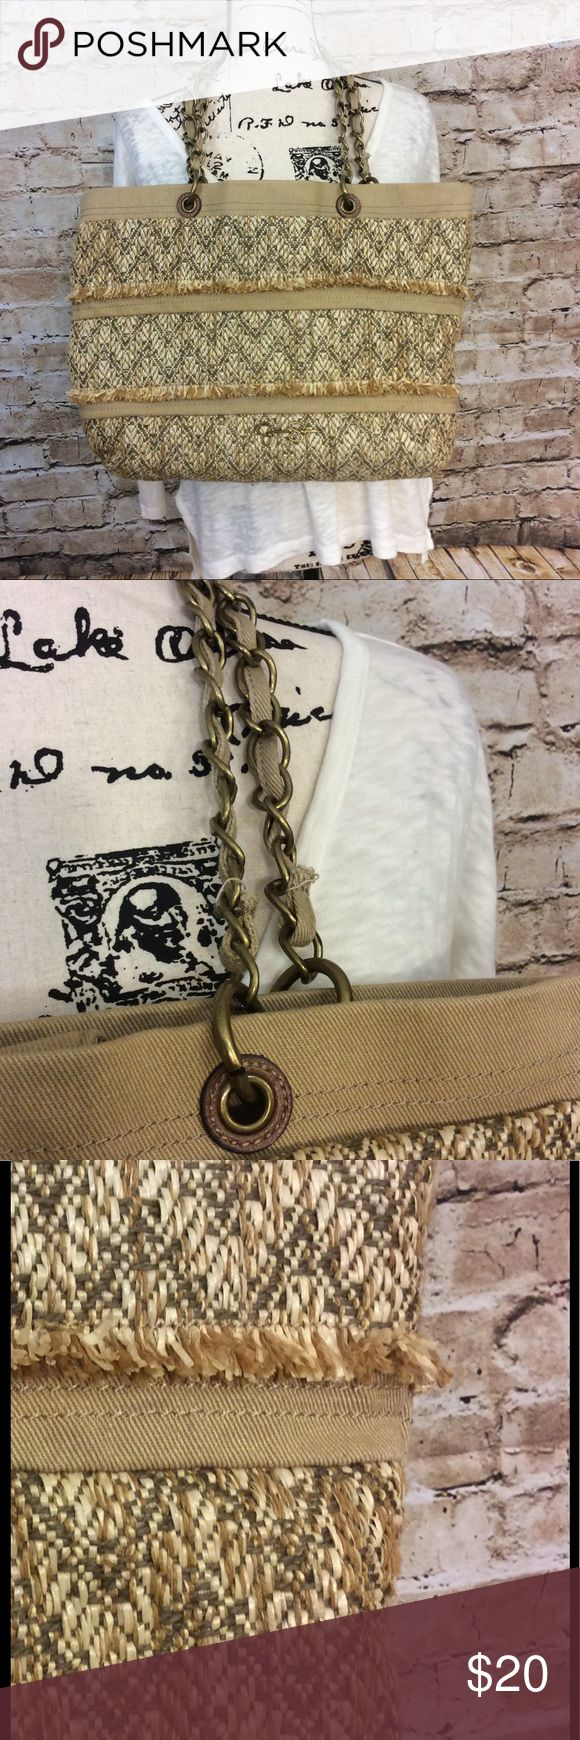 Jessica Simpson large raffia and canvas tote/Purse Jessica Simpson gently used large raffia and canvas tote/purse with brass hardware Zipper pocket inside also pocket for glasses and phone  clean inside  Height of purse is 12 inches Width of purse is 17 inches Depth of purse is 4 1/2 inches Length of shoulder strap is 10 1/2 inch Snap closure on top This is a nice play purse great for summer going to the beach or just as your everyday person Jessica Simpson Bags Shoulder Bags